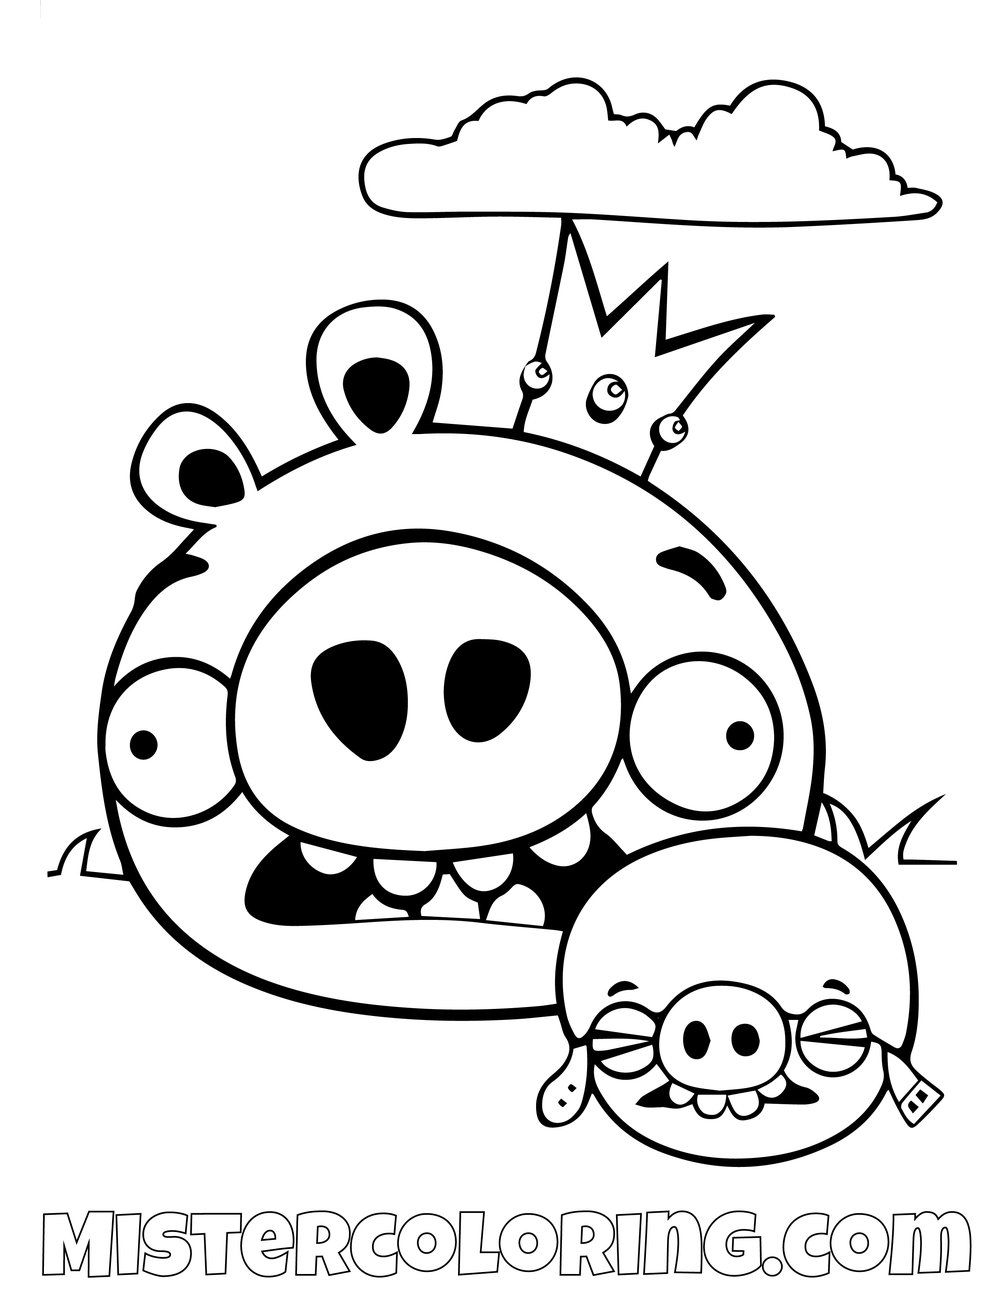 King Pig Angry Birds Coloring Pages Bird Coloring Pages Coloring Books Coloring Pages